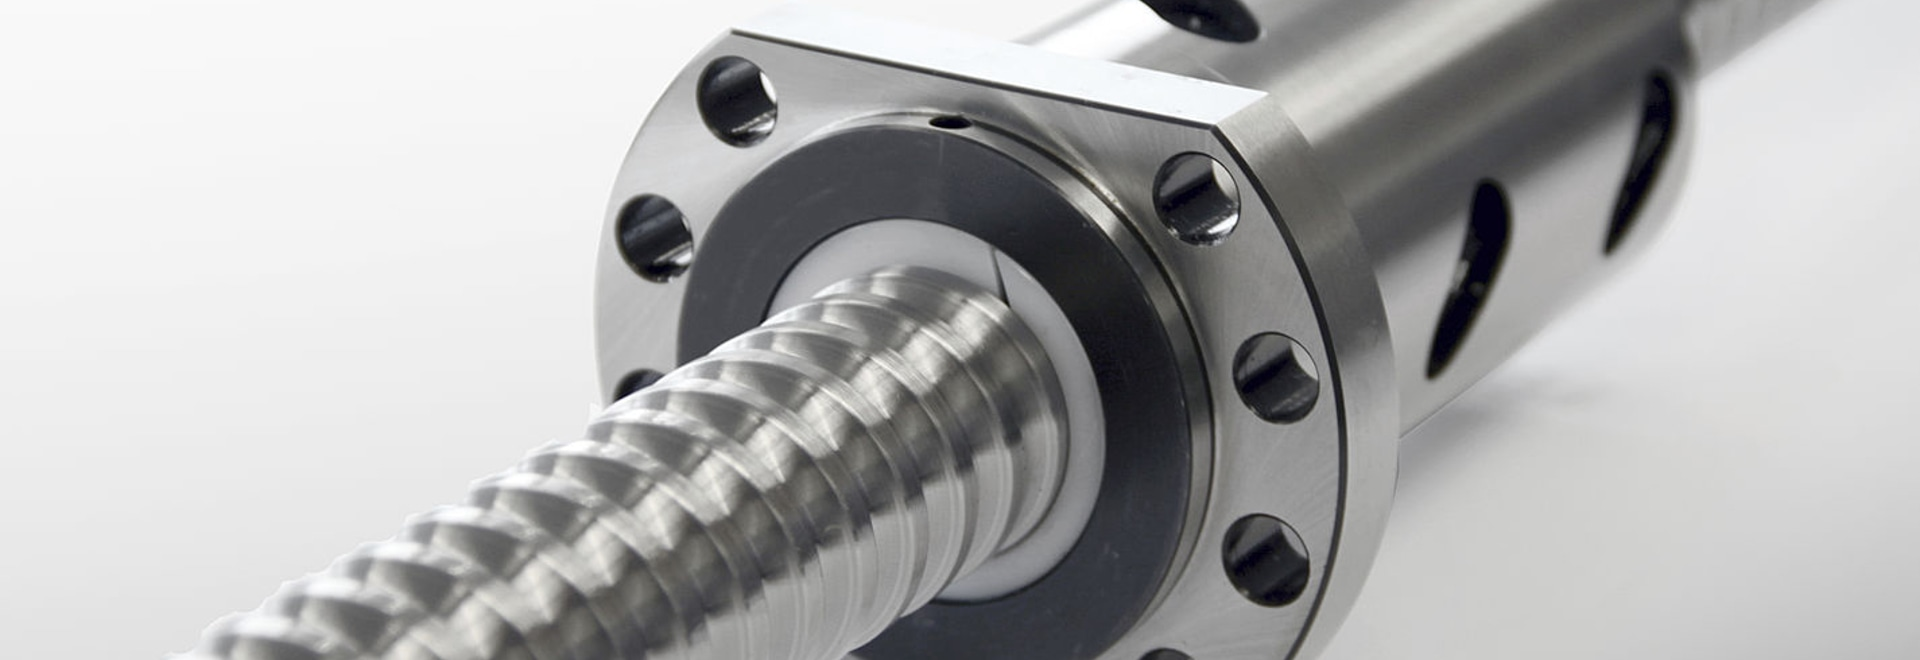 Thomson High Load Ball Screws – Motion Control Solution With Higher Density